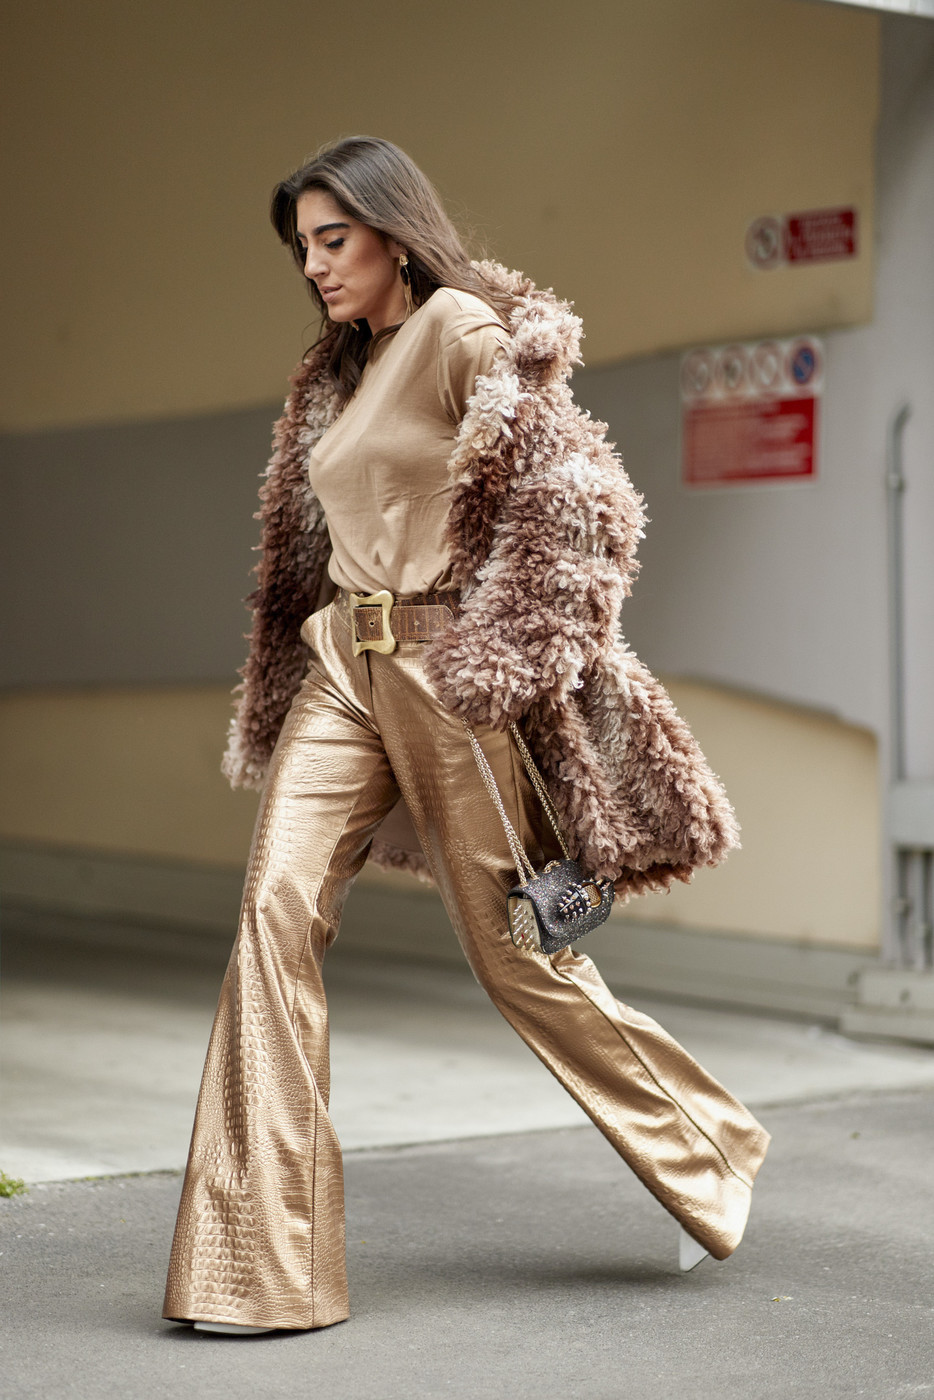 Textured Metallics The Most Fabulous Street Style Seen At Milan Fashion Week Livingly